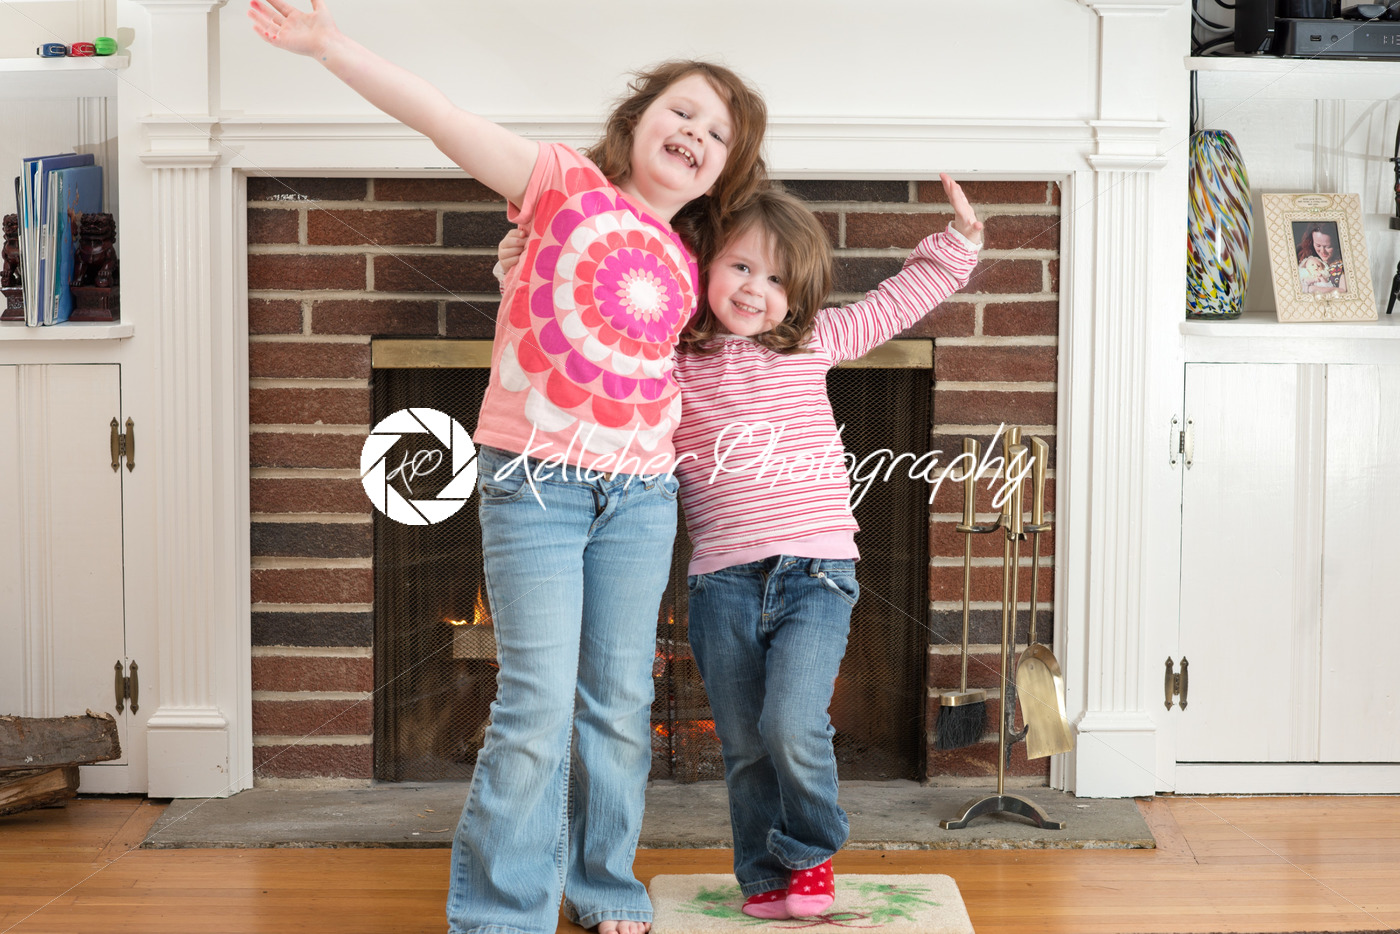 Portrait of a two young smiling sibling girls in front of a fireplace dressed for valentine's day - Kelleher Photography Store